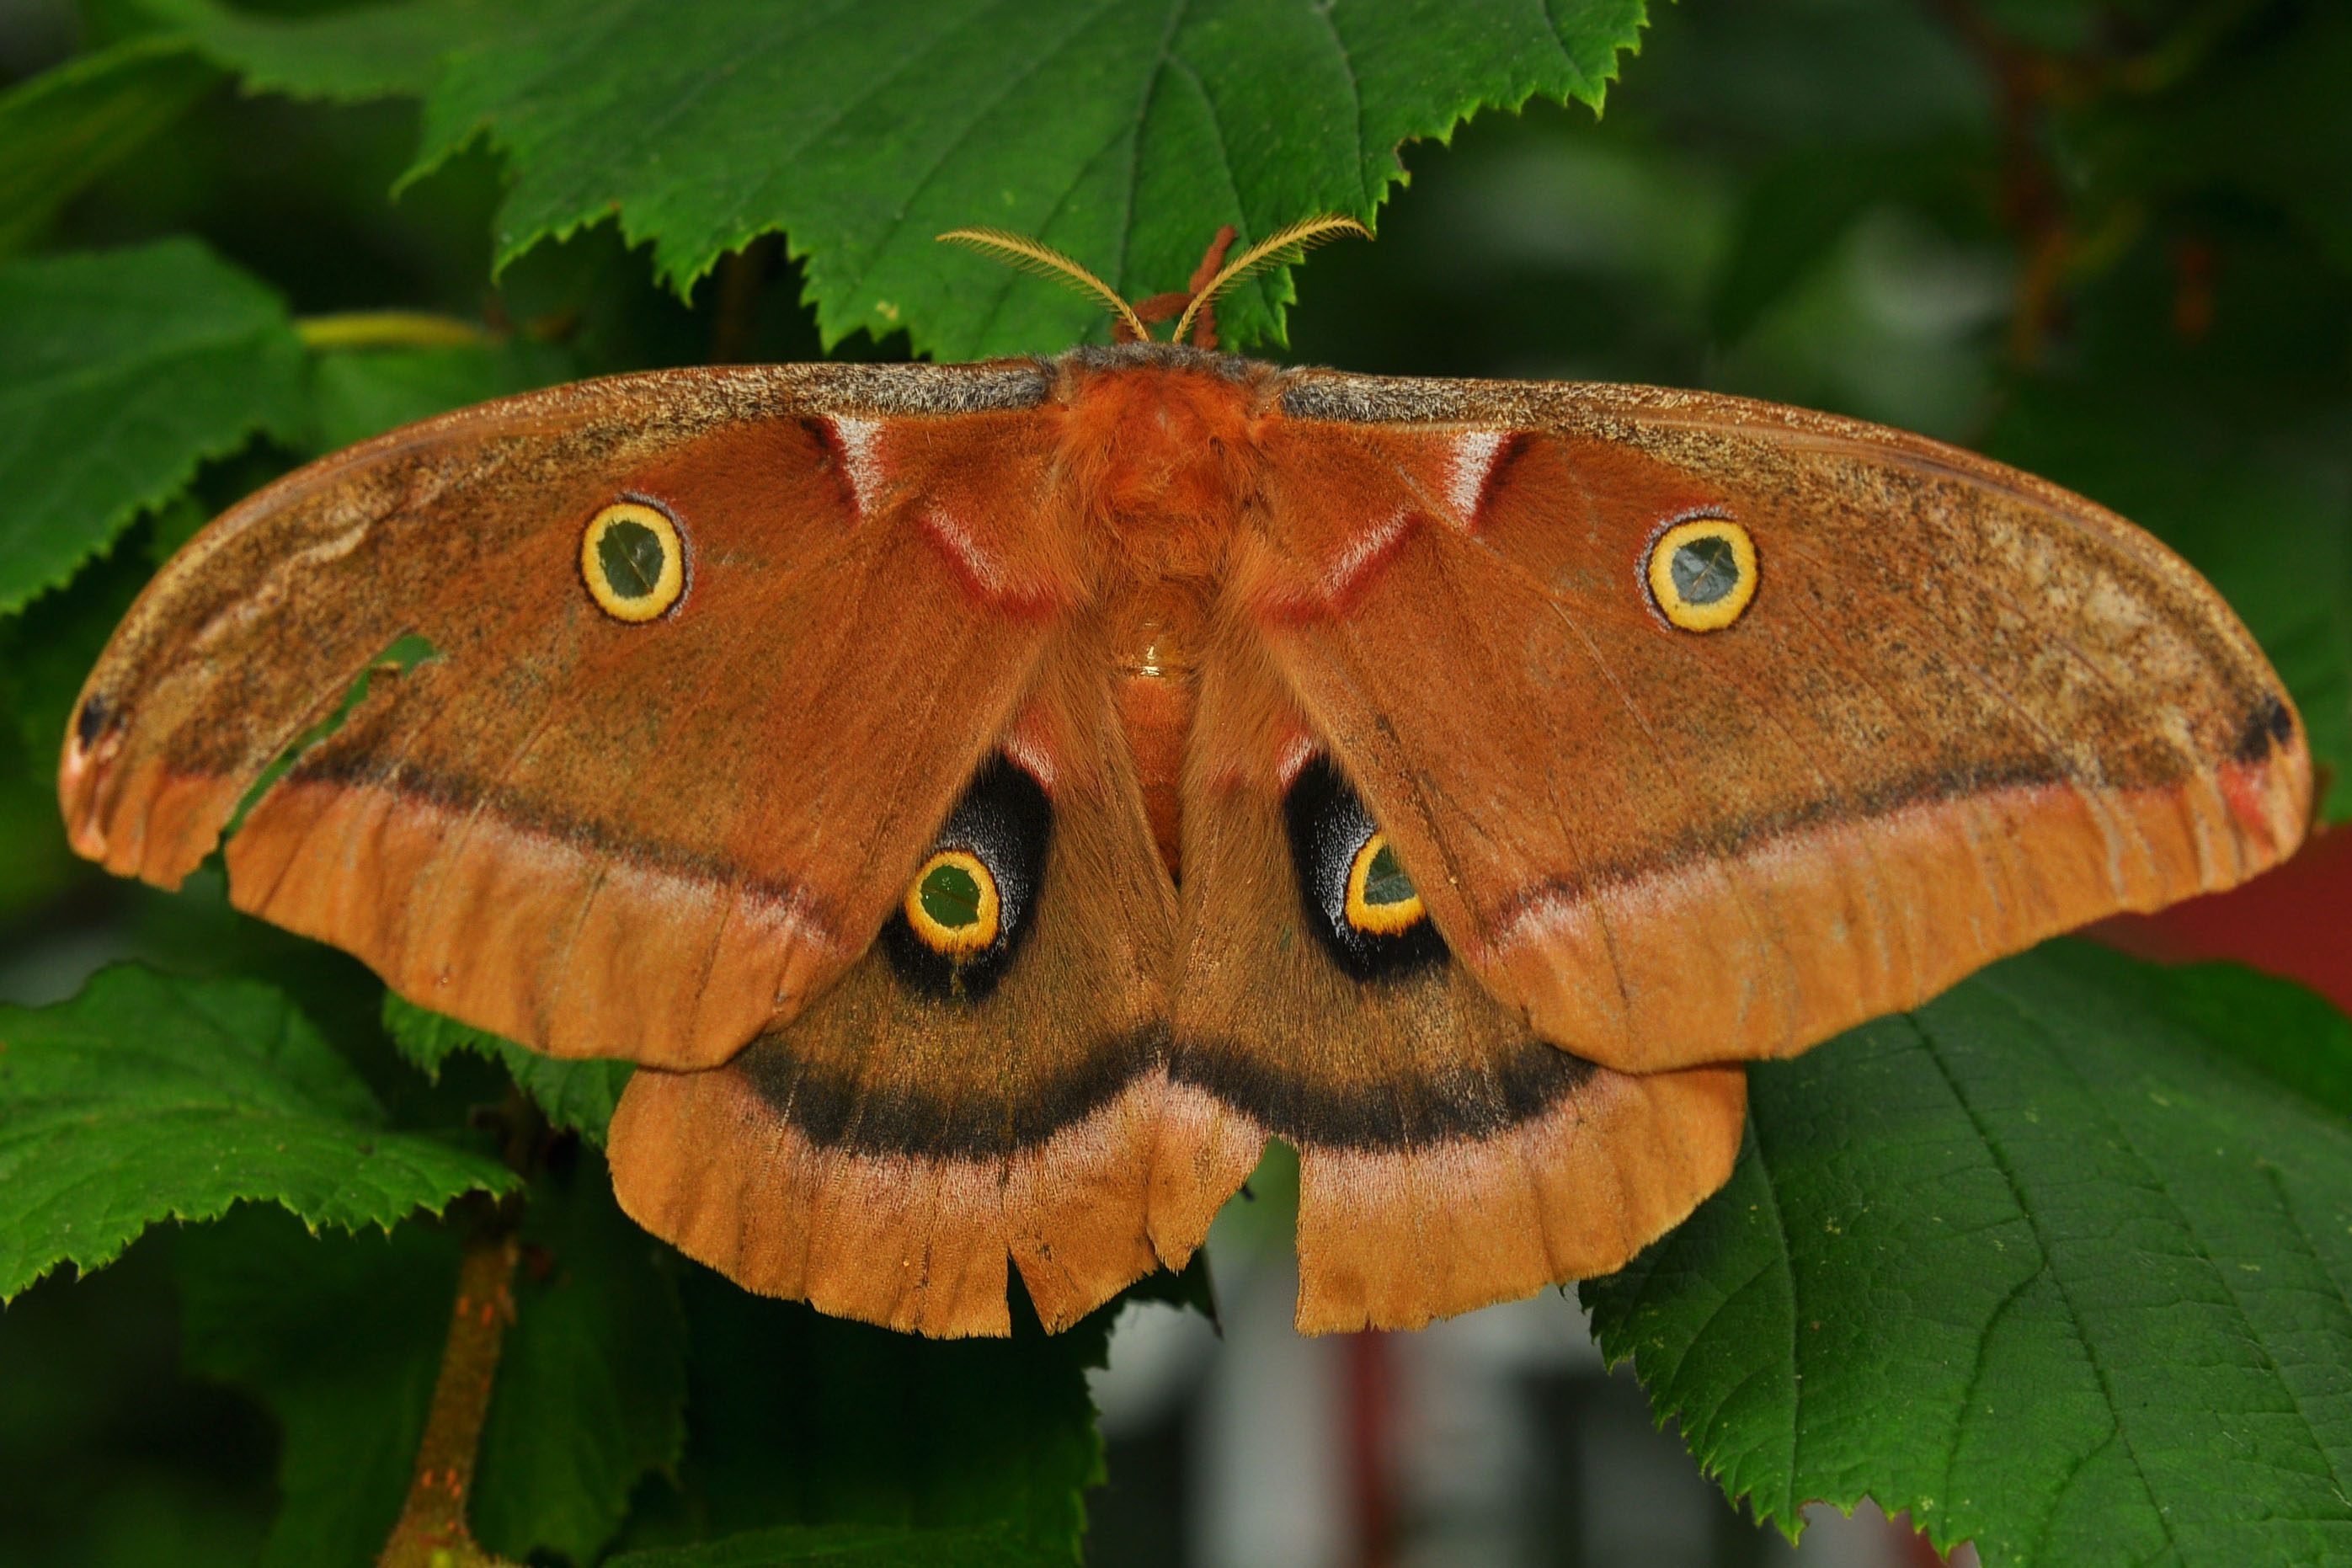 A large polyphemus moth (orange in color) sits on bright green leaves.